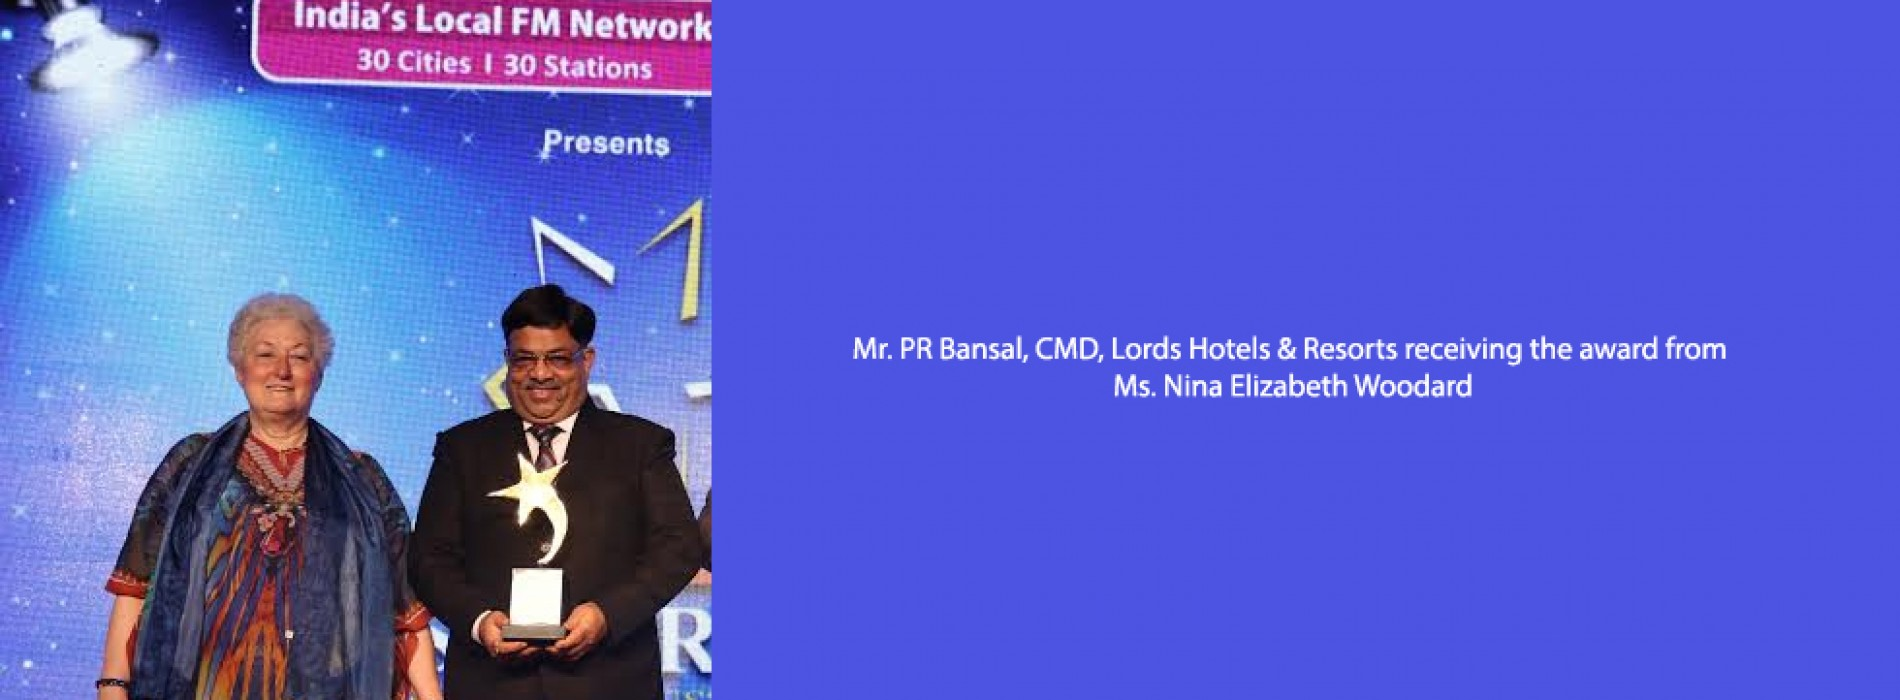 Lords Hotels & Resorts awarded the 'Best Mid-Market Hotel Chain' for the 2nd consecutive year